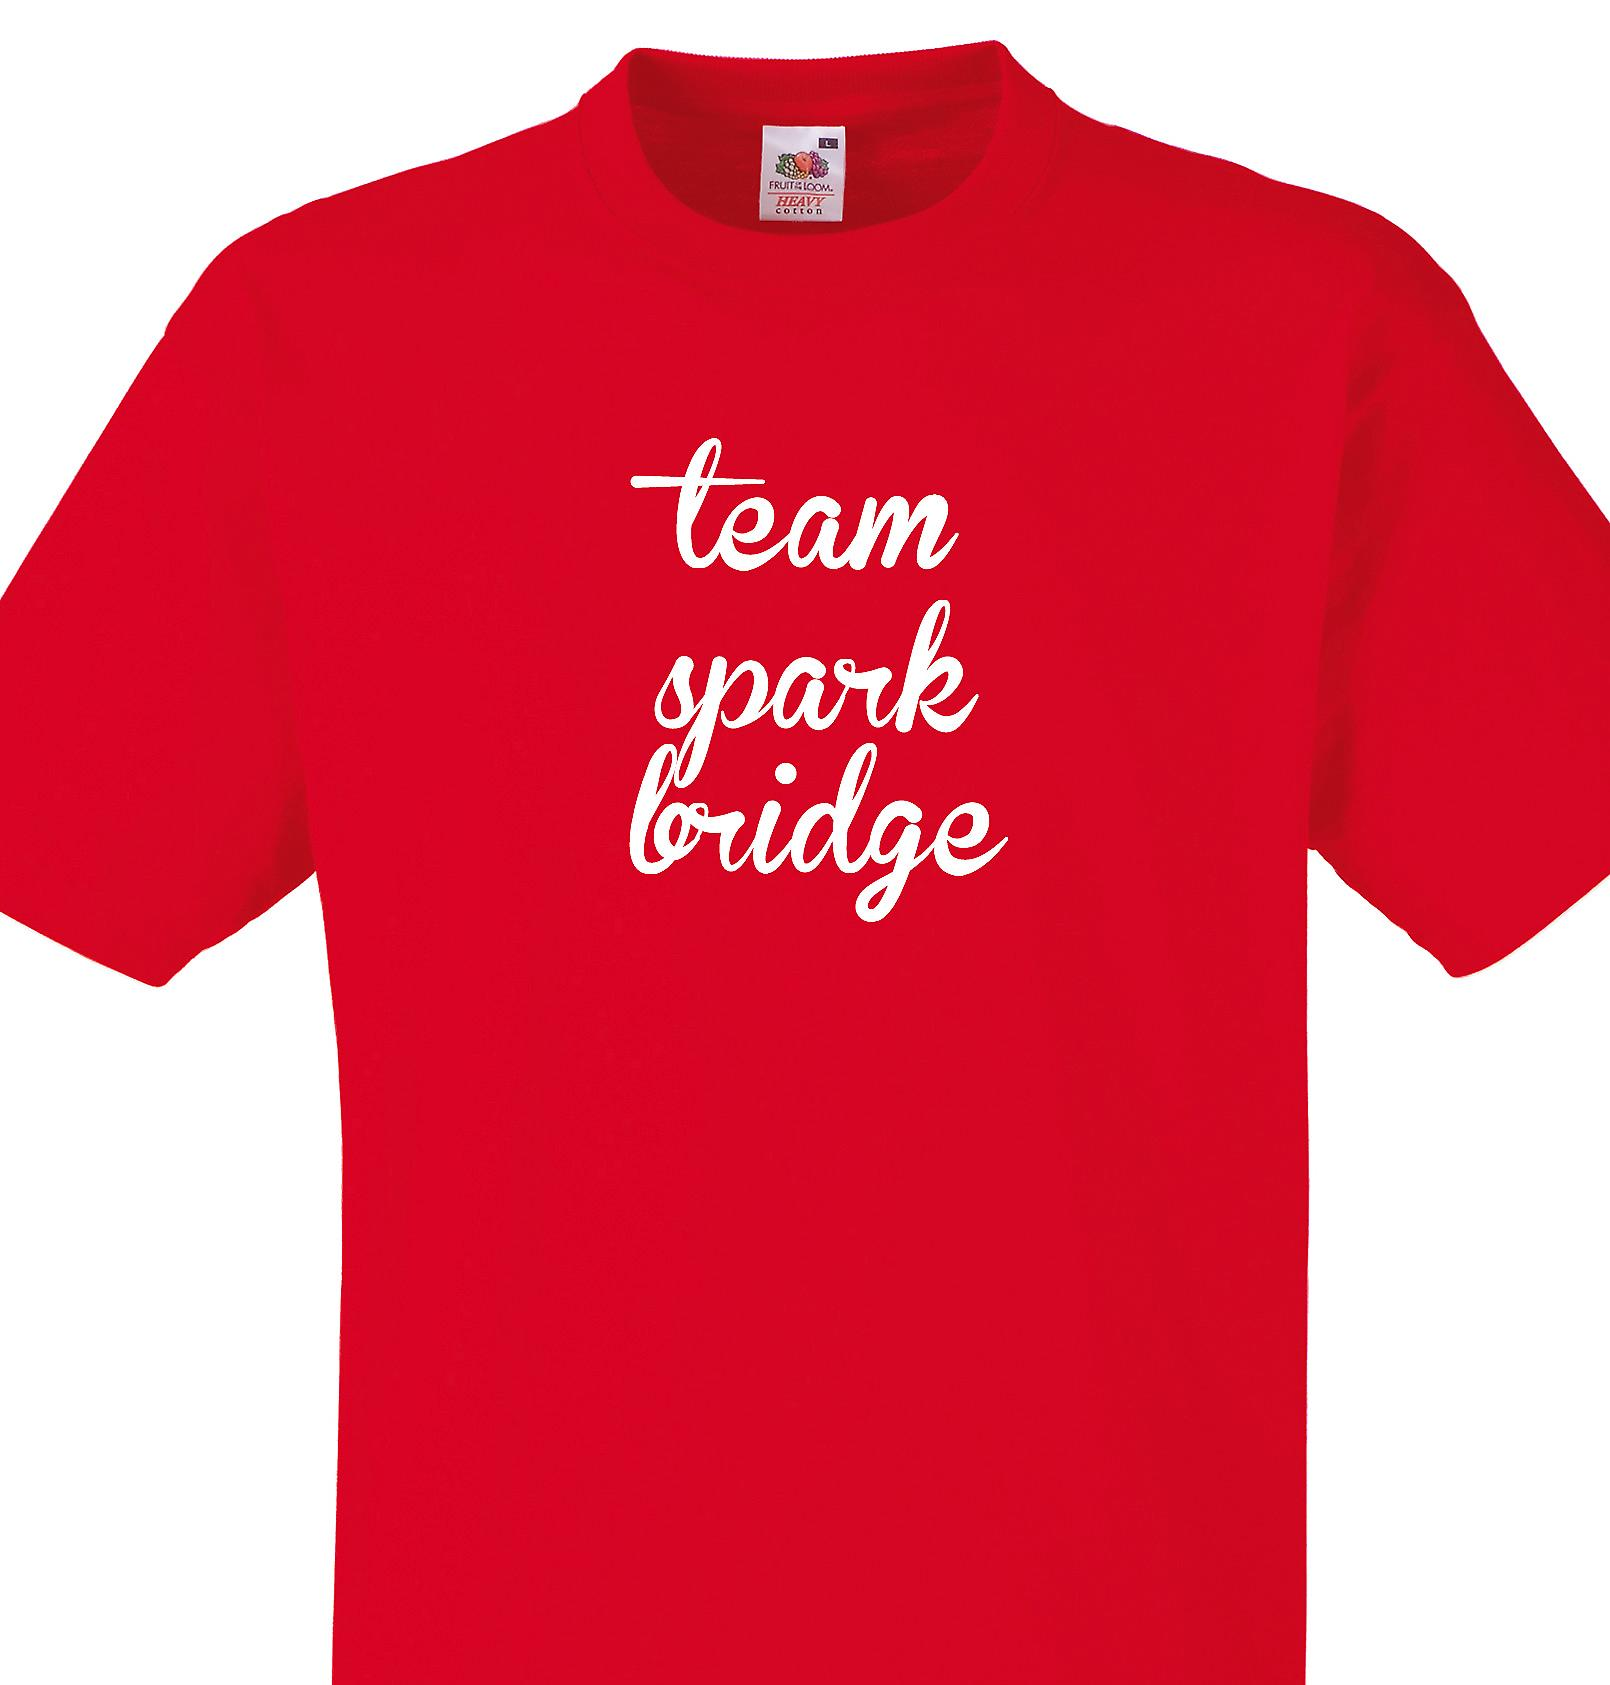 Team Spark bridge Red T shirt